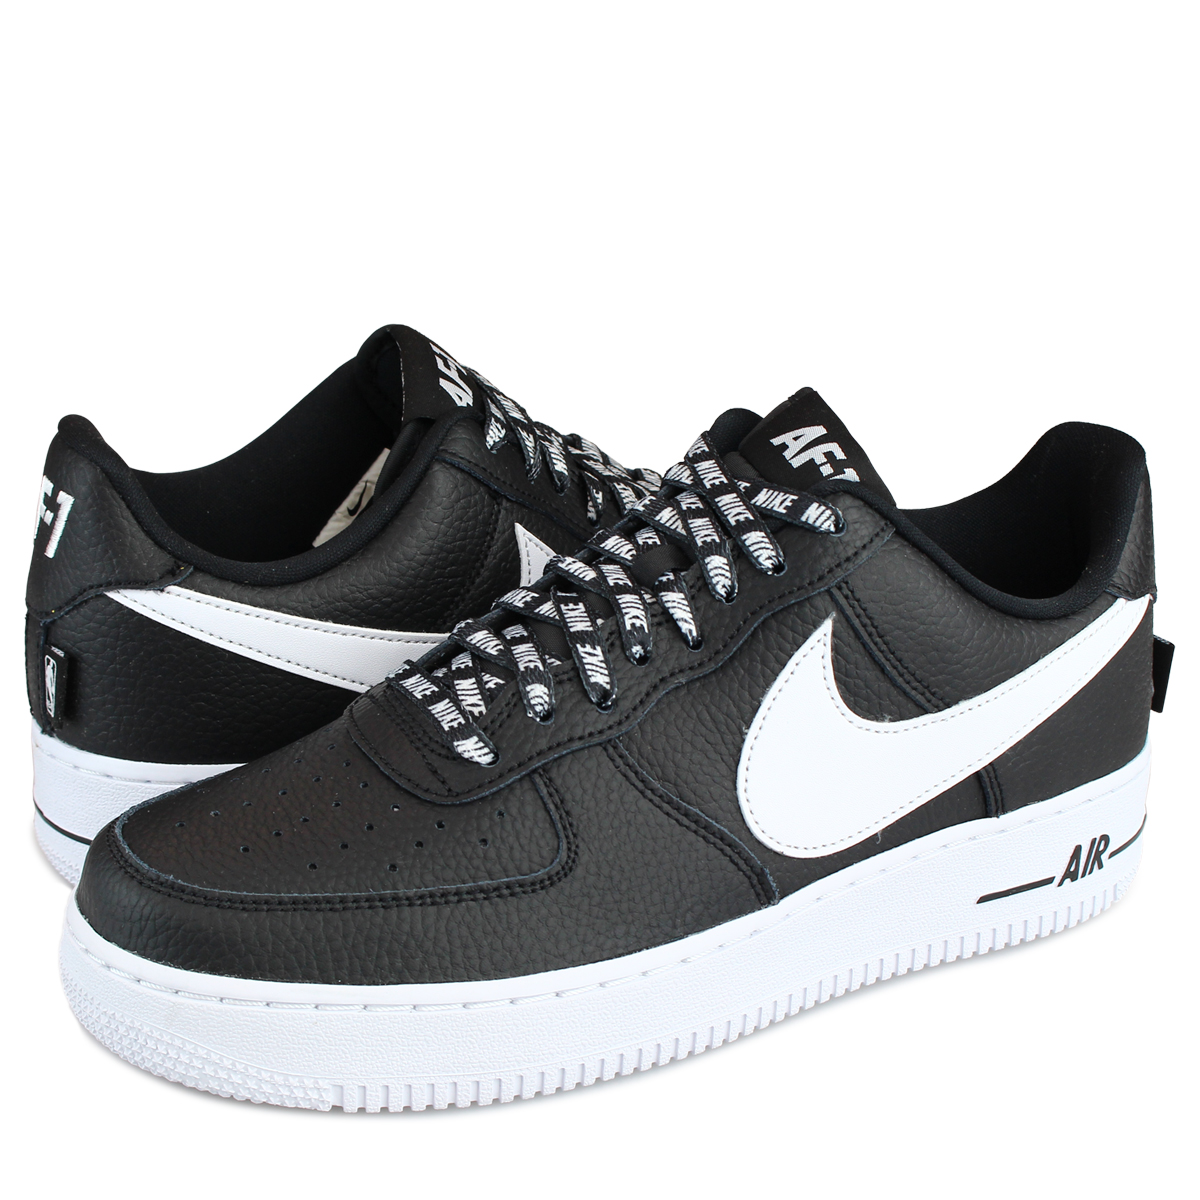 Whats up Sports  NIKE AIR FORCE 1 STATEMENT GAME Nike air force 1 07 ... 9d9c3eea4